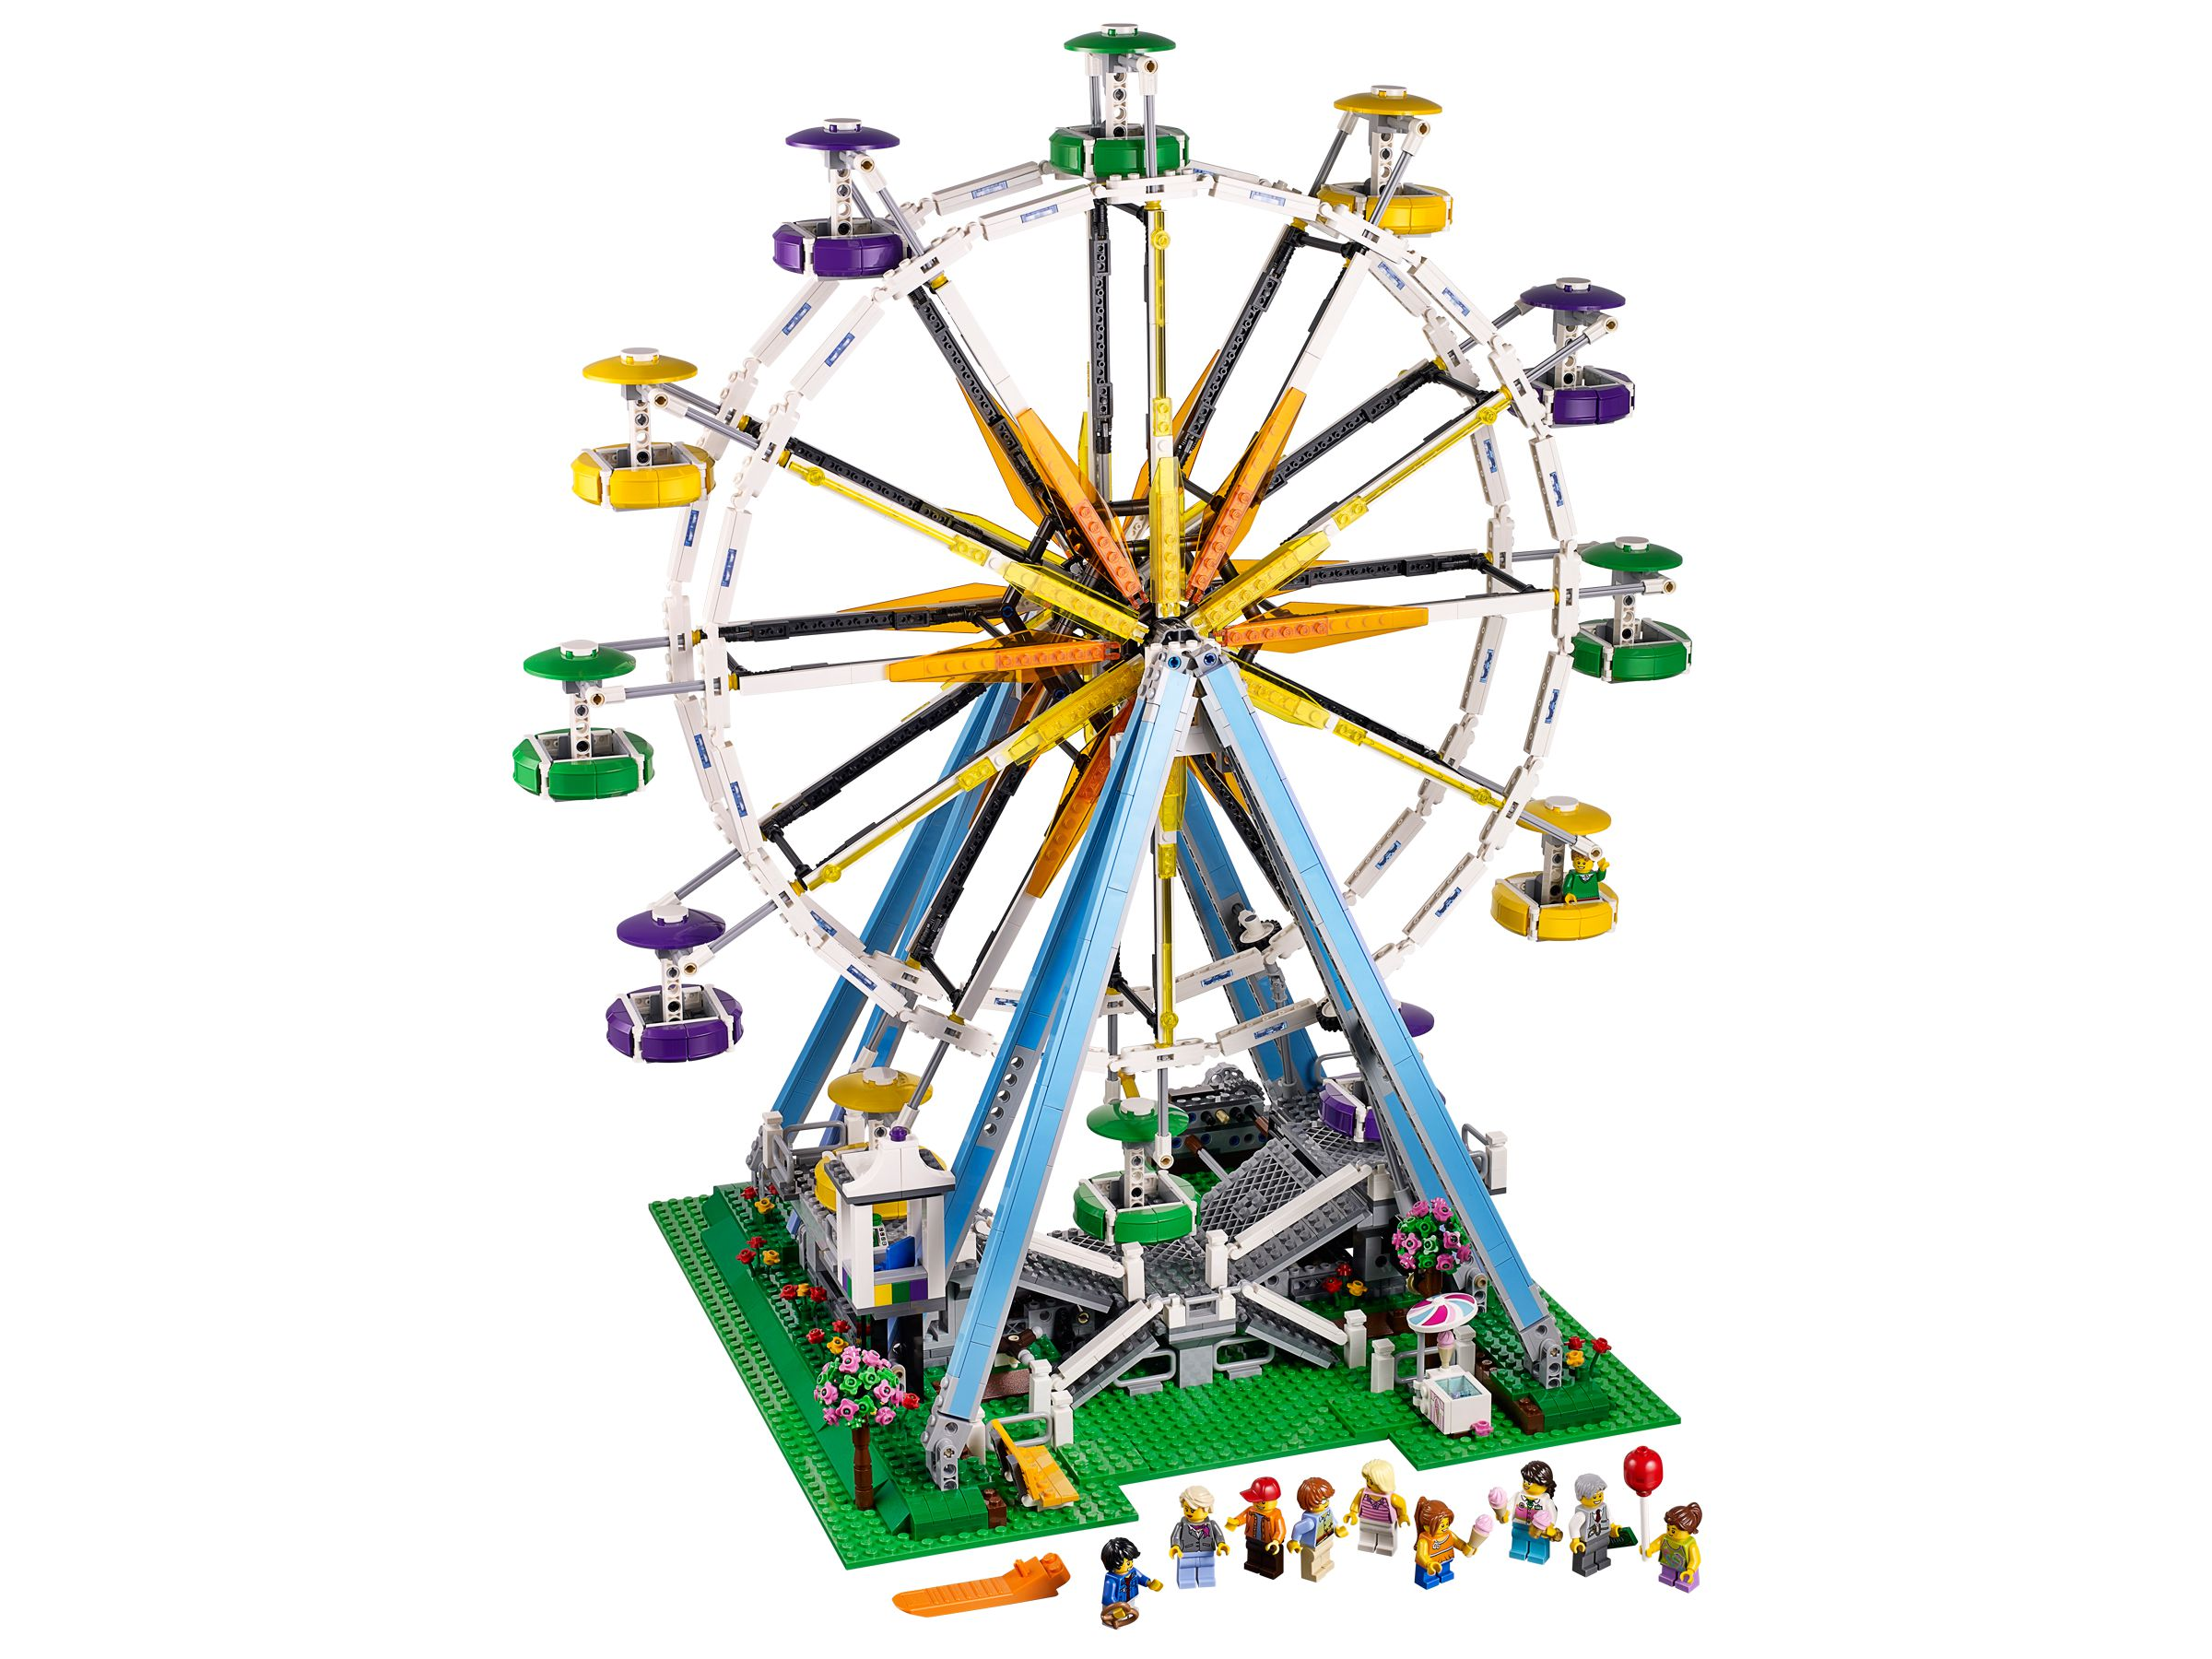 LEGO Advanced Models 10247 Riesenrad (Ferris Wheel) LEGO_10247.jpg